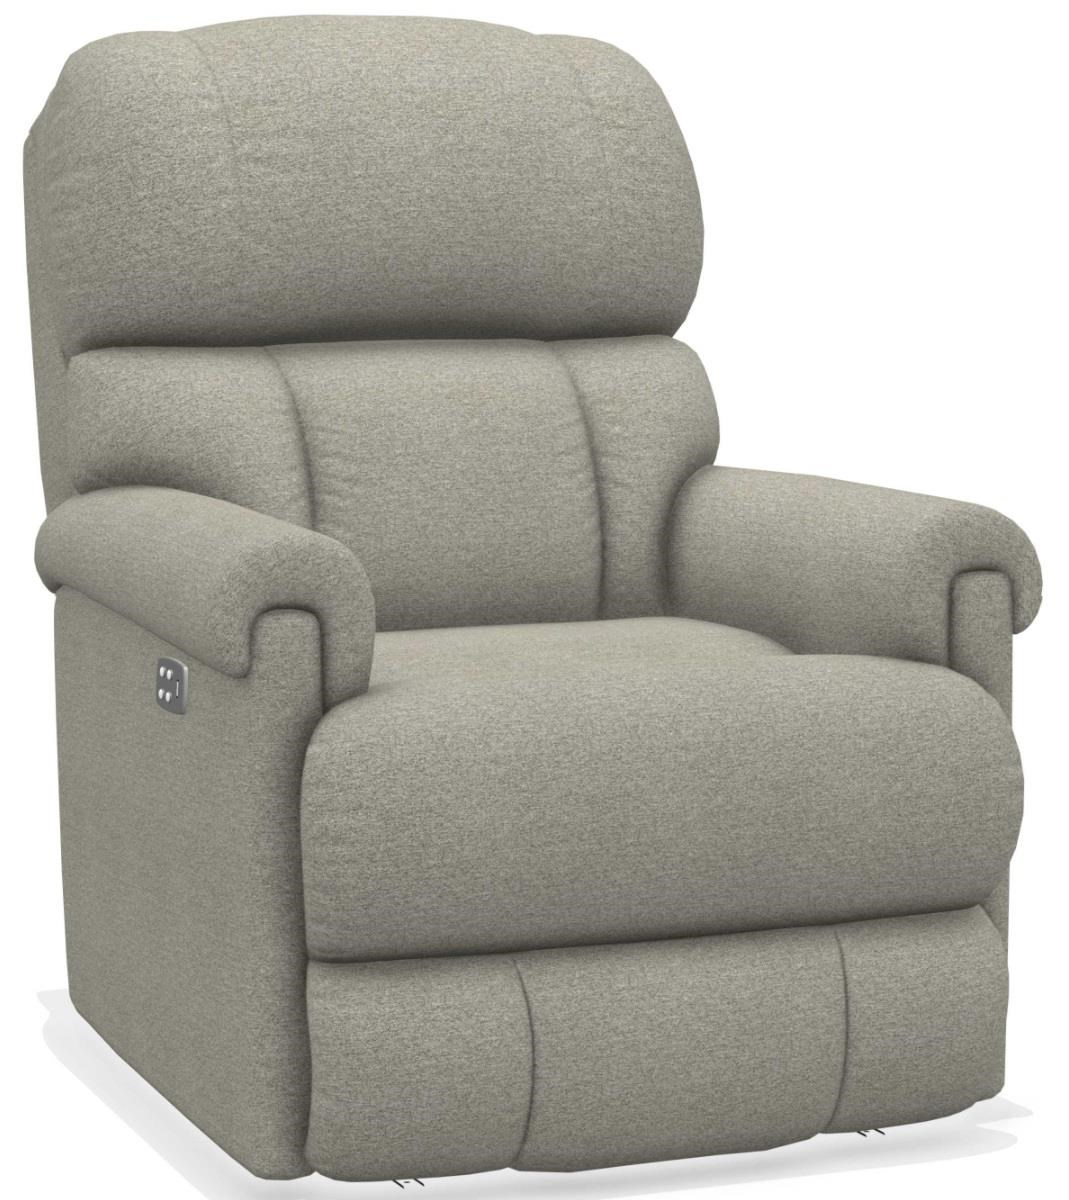 Pinnacle Power Recliner by La-Z-Boy at Bennett's Furniture and Mattresses